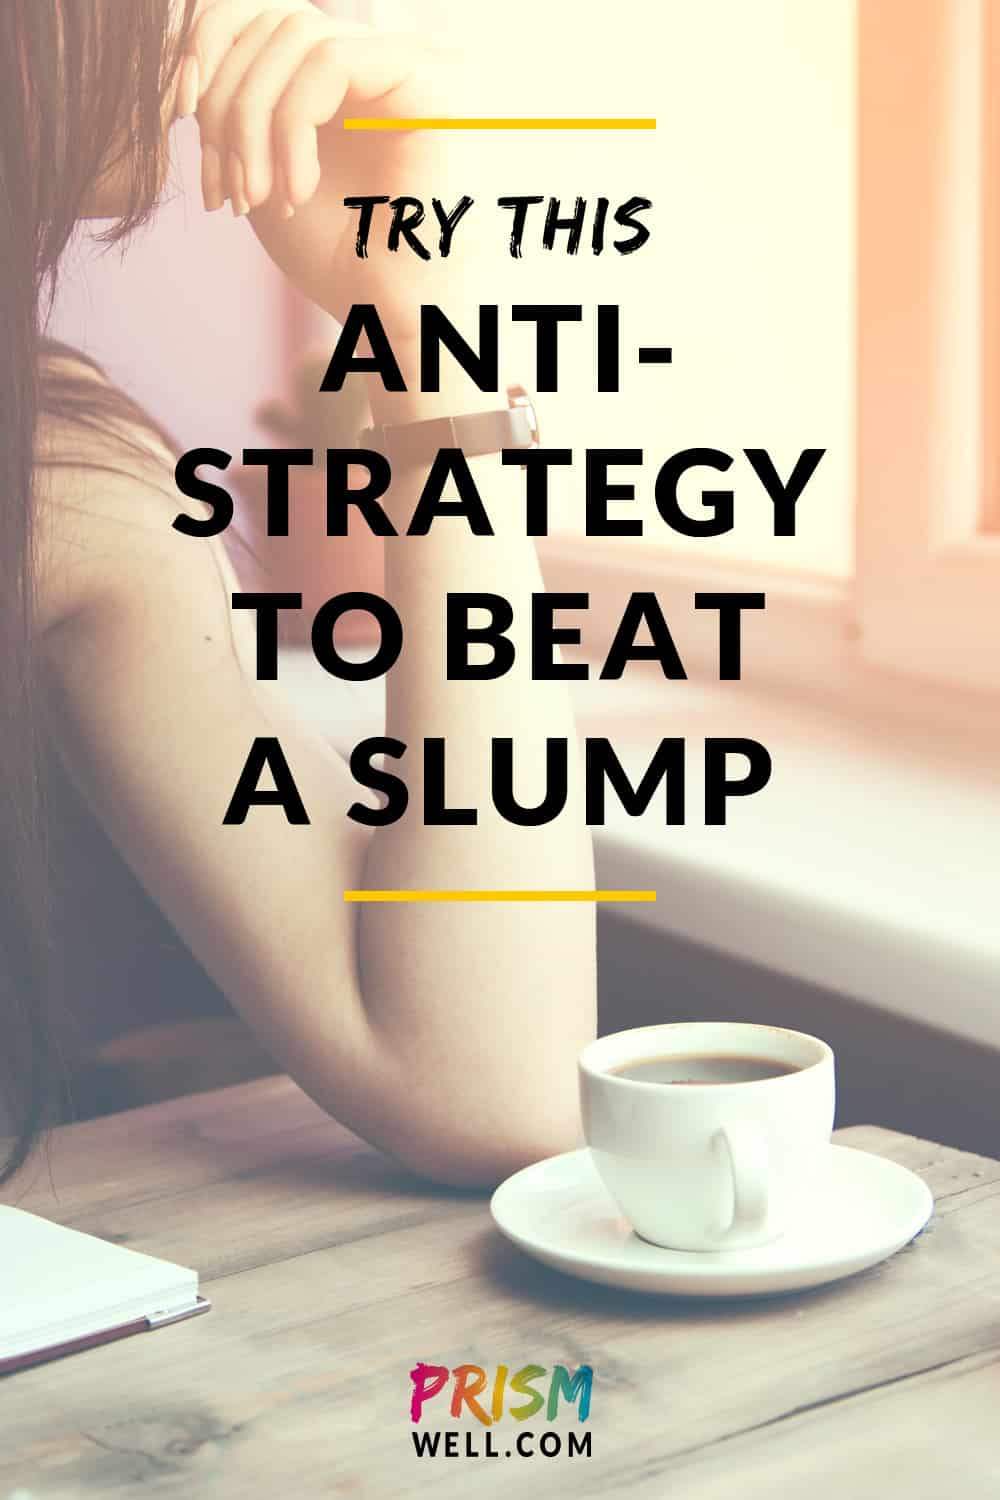 Here's my best anti-strategy for beating a winter (or anytime) slump, in case you too are feeling mired in quicksand right about now: Slump into it.